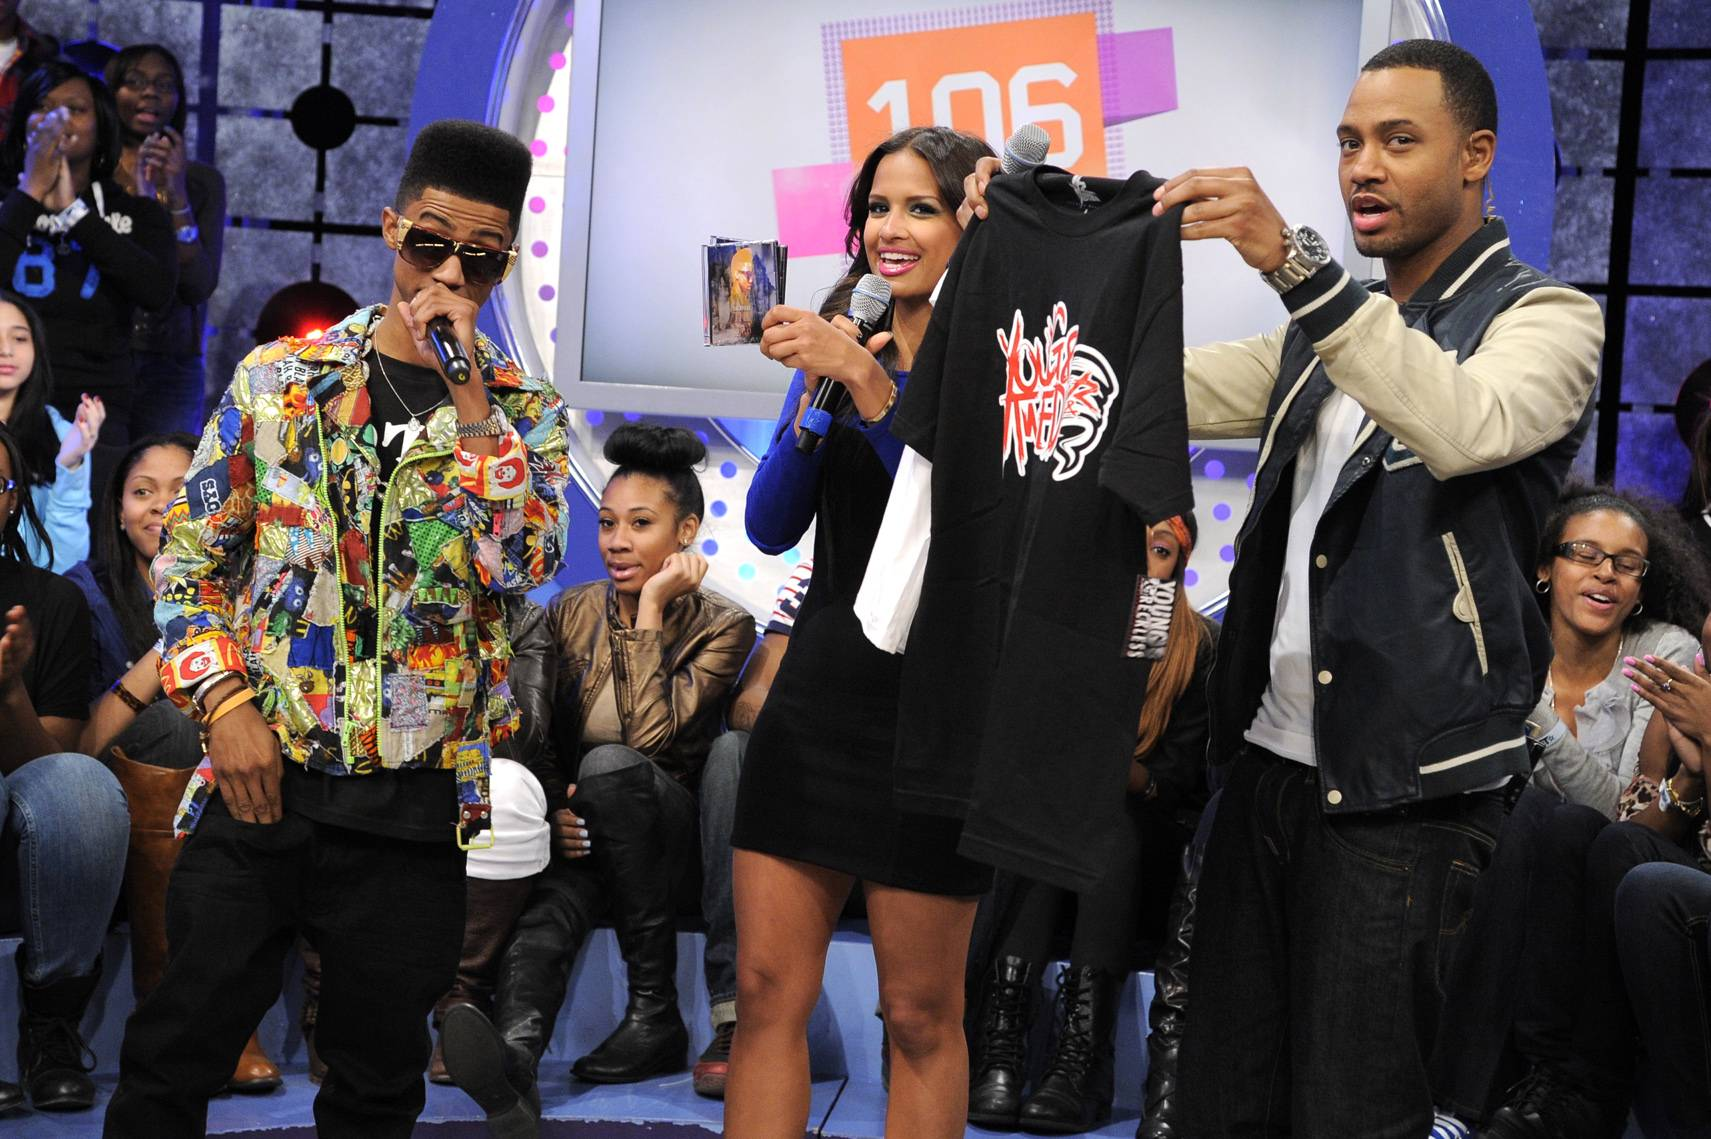 OK Now - Lil Twist presents shirts to Rocsi Diaz and Terrence J at 106 & Park, January 05, 2012. (Photo: John Ricard/BET)